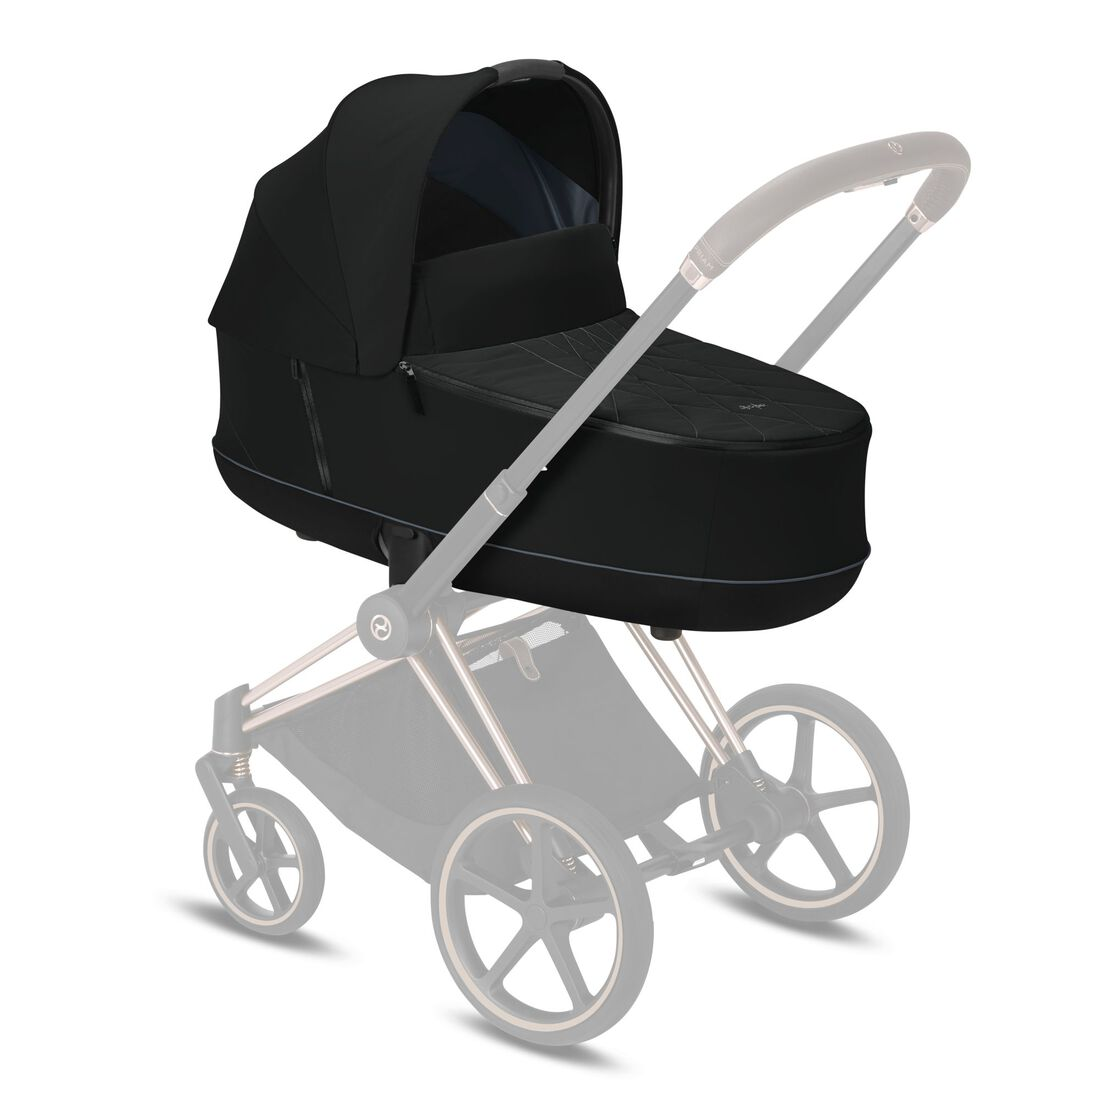 CYBEX Priam Lux Carry Cot - Deep Black in Deep Black large Bild 5